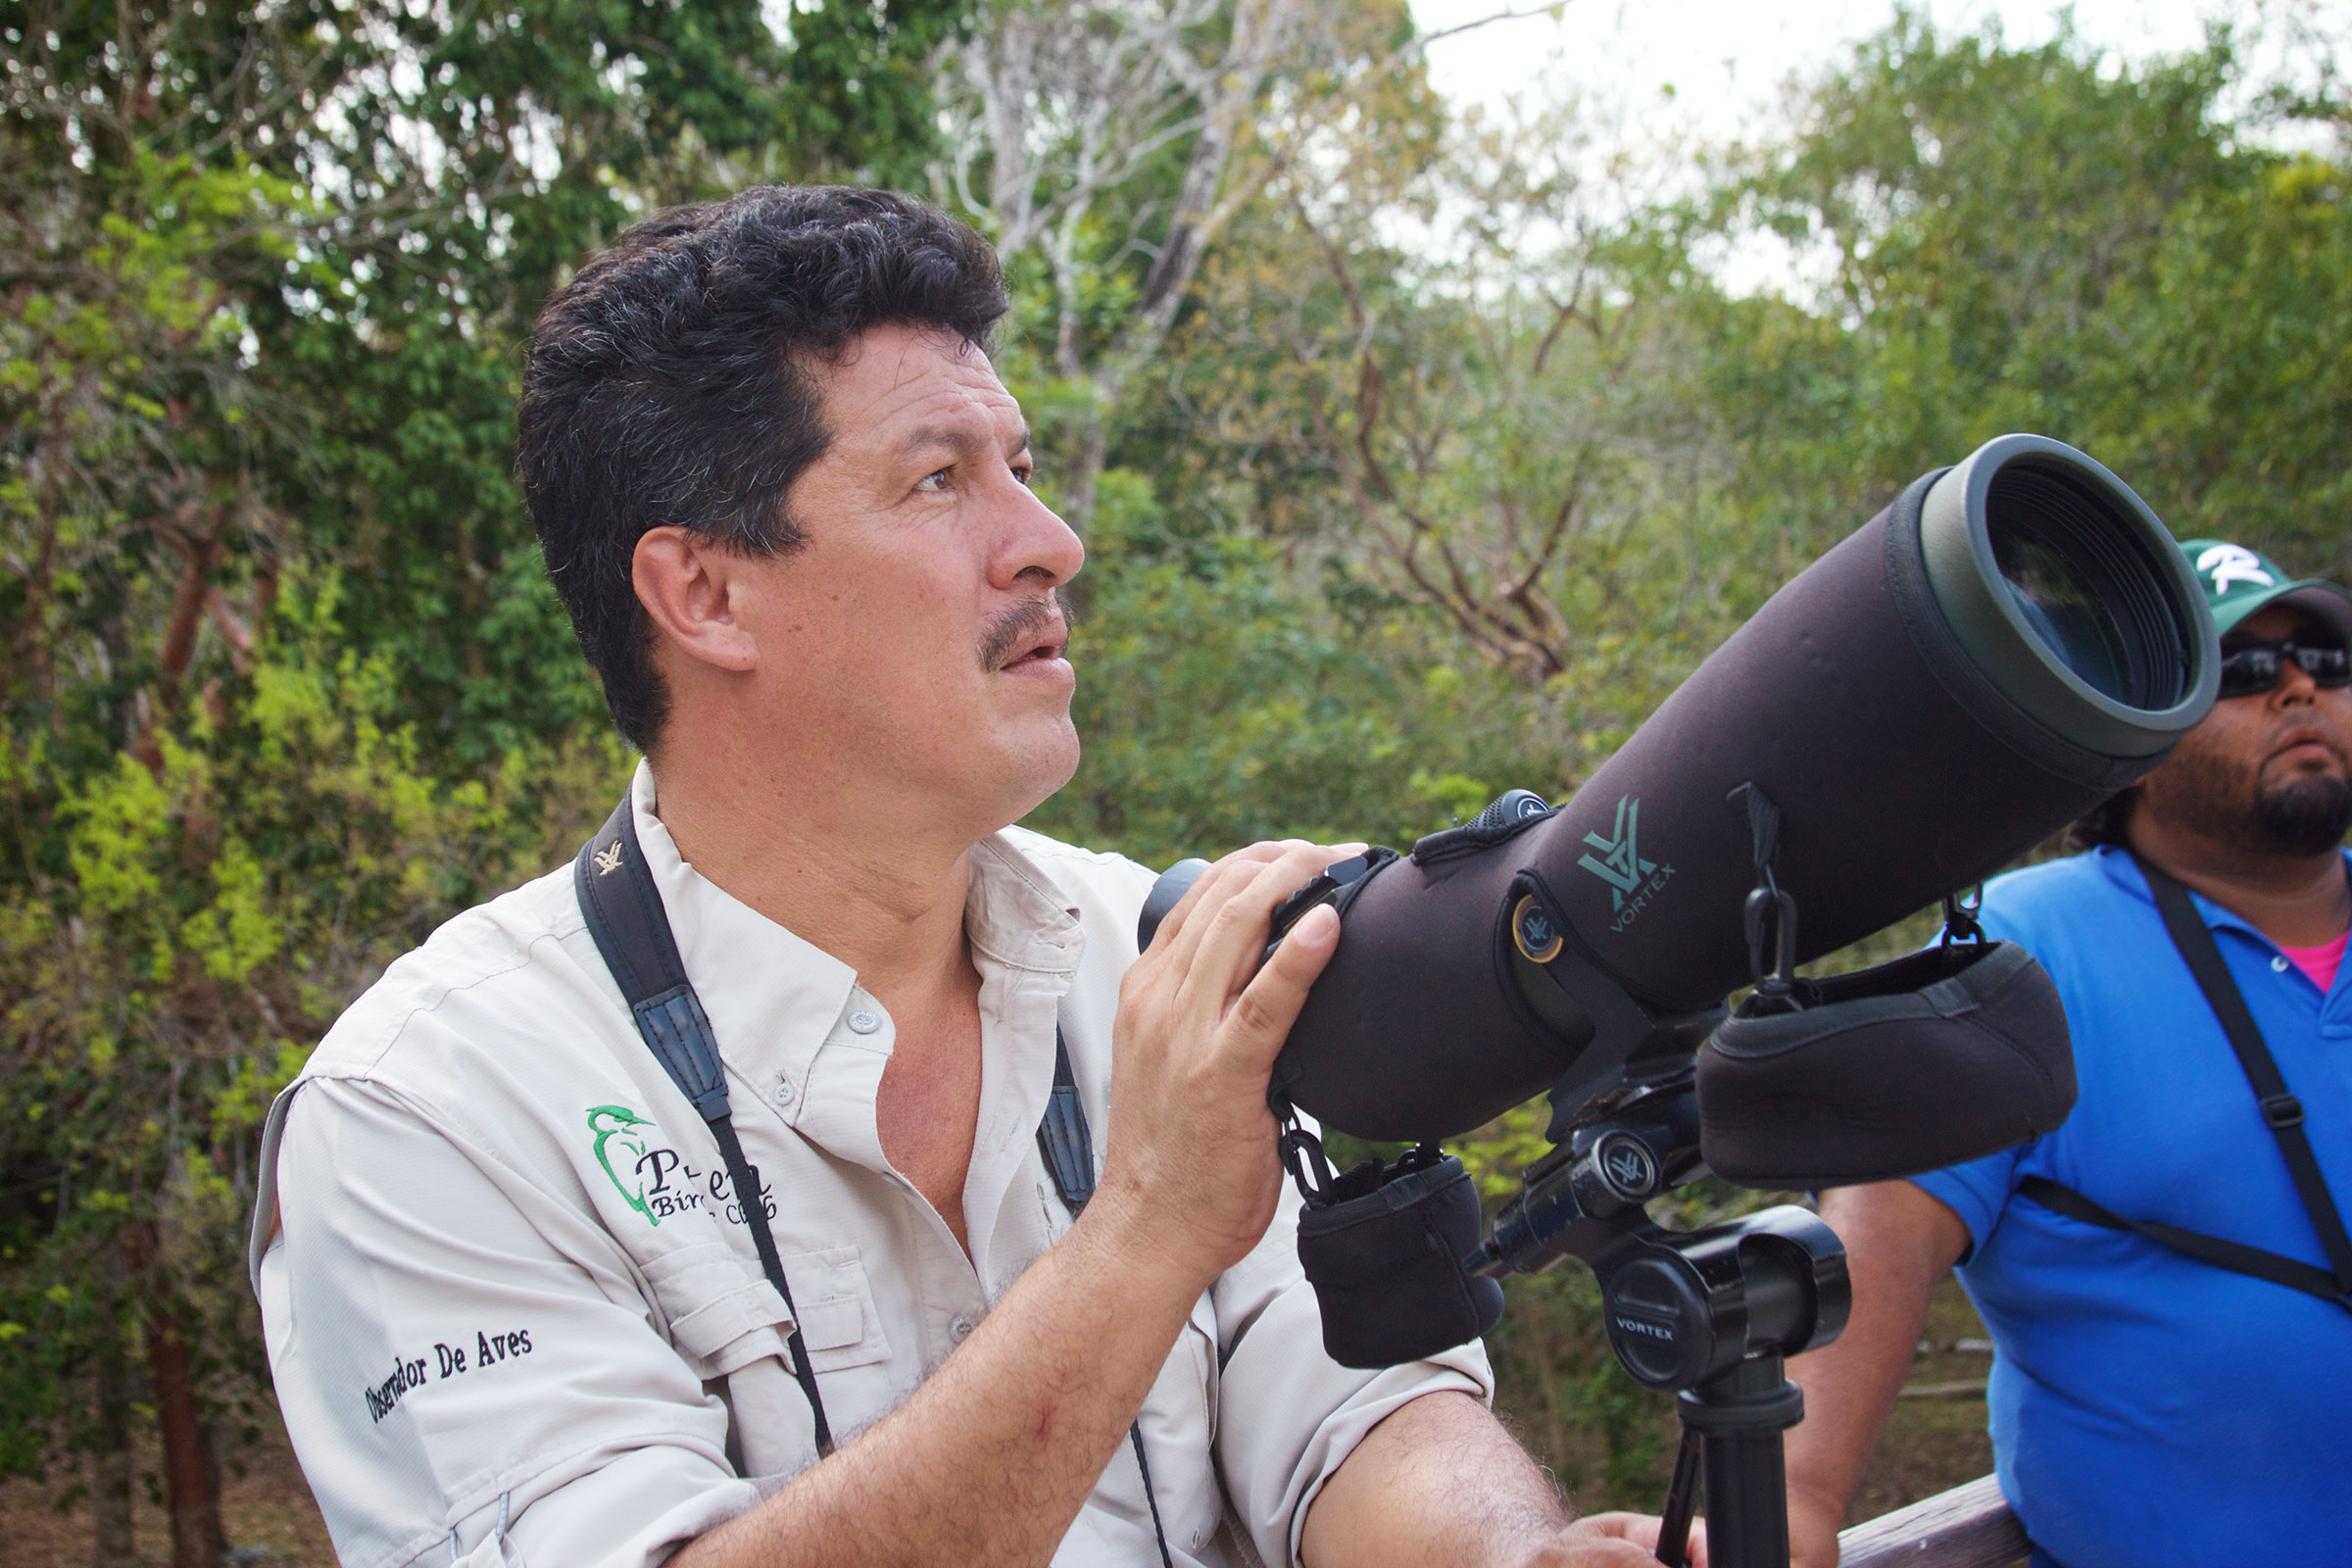 Marciál Córdoba, who coordinated the bird-guide training program in the Petén rregion, is a field coordinator for the Wildlife Conservation Society (WCS). Tom Clynes